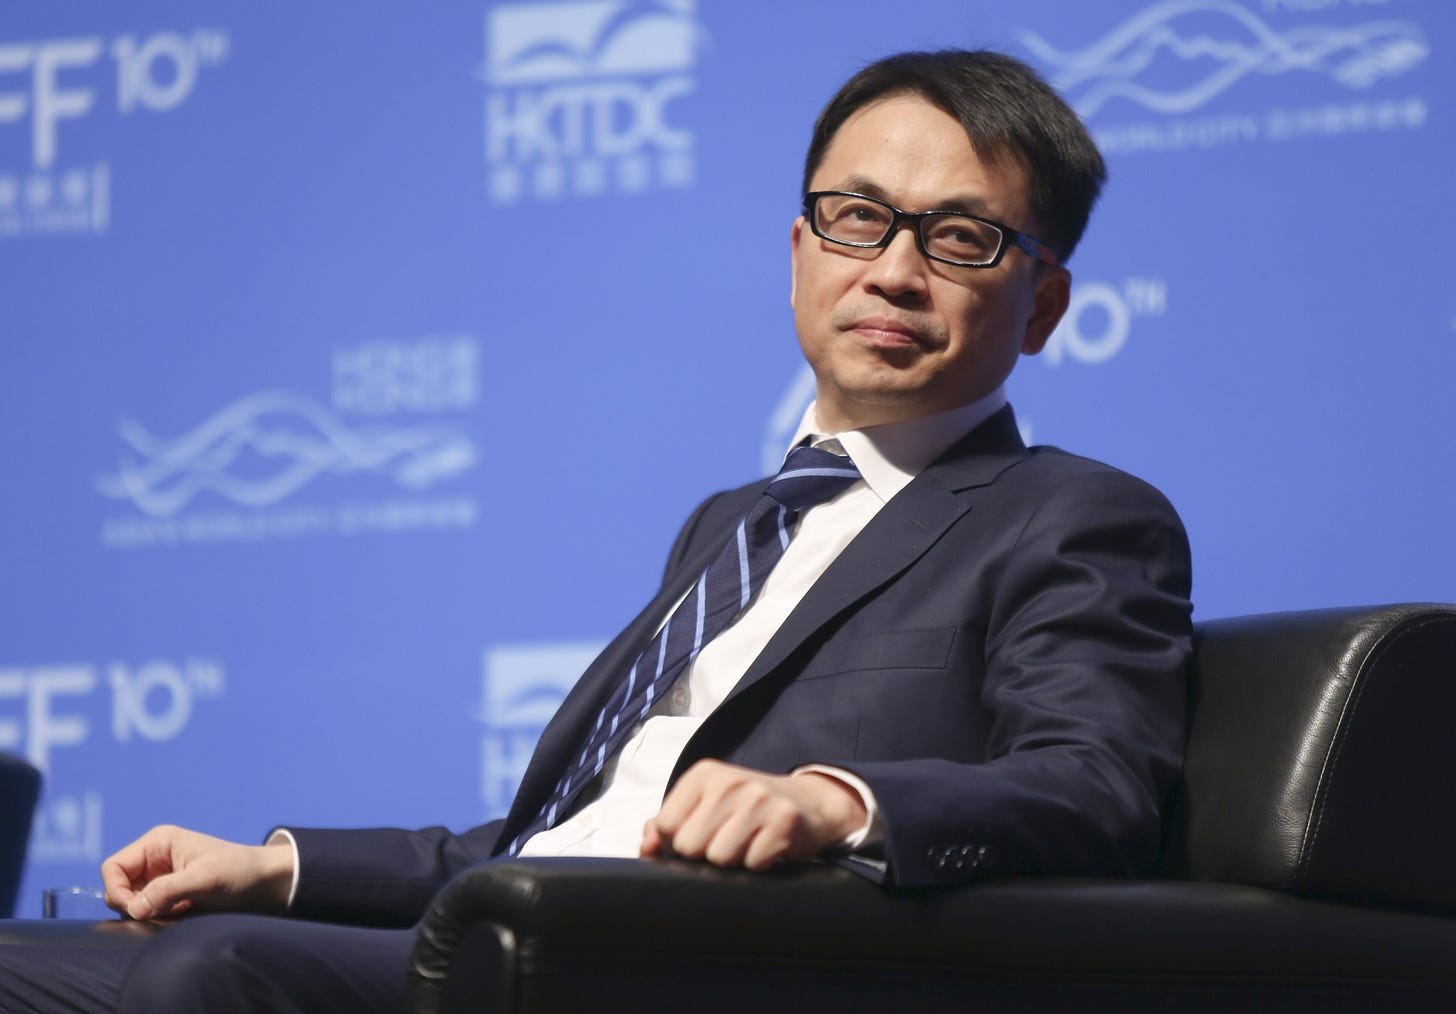 How China's Zhang Lei, the billionaire Tencent and JD.com tech investor,  went from selling instant noodles to buying a stake in Amazon | South China  Morning Post